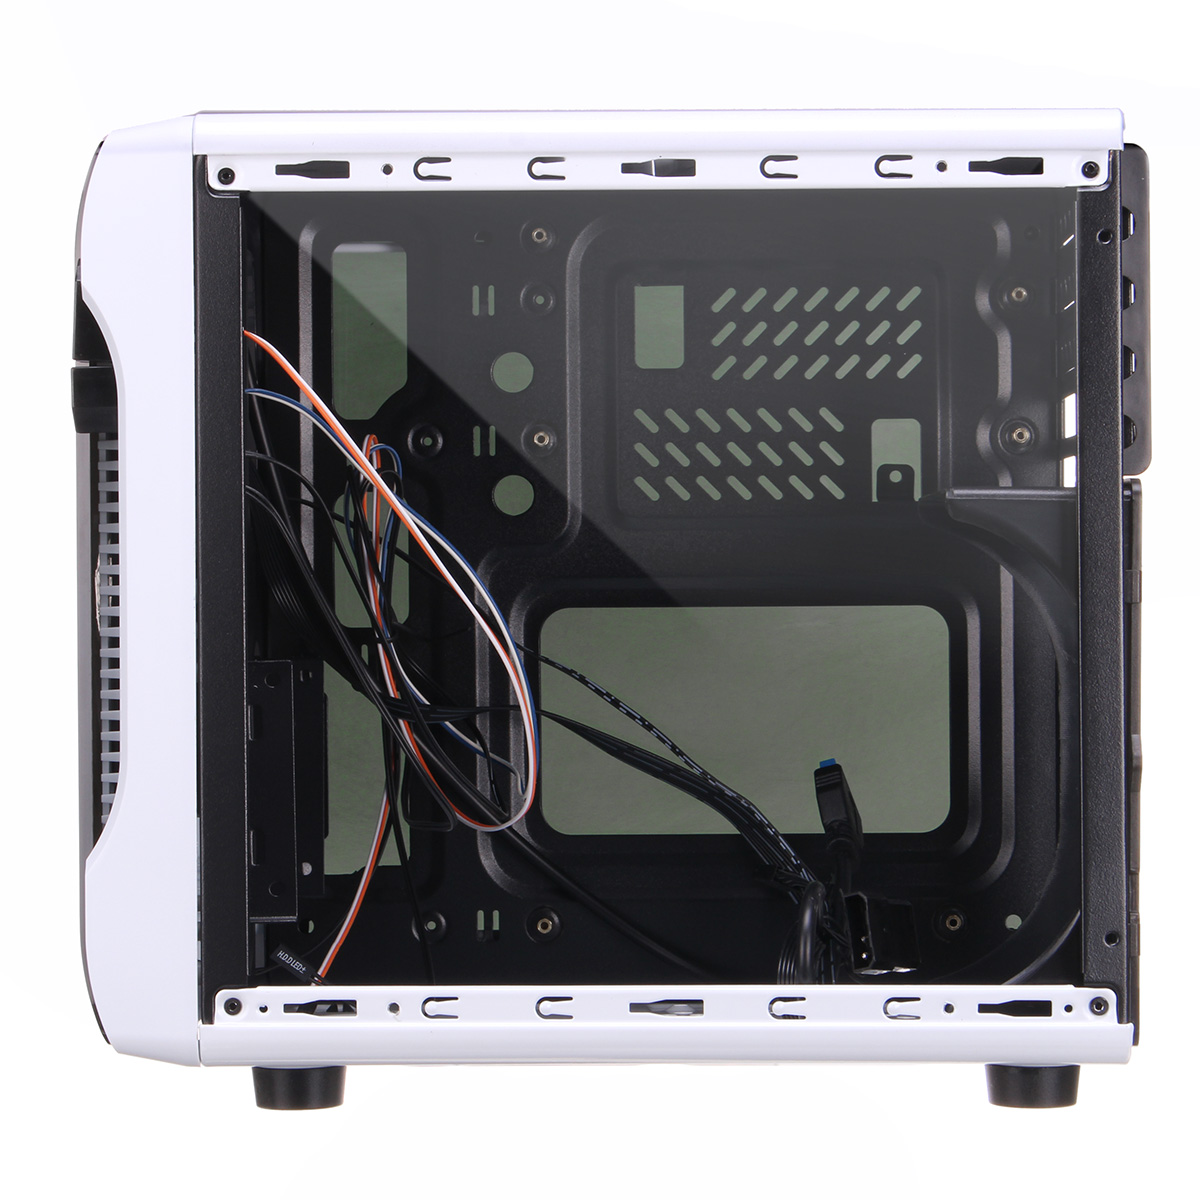 Coolmoon 285*285*225mm Transparent Side Panel Micro-ATX Mini-ITX PC Computer Case with 14mm Fan